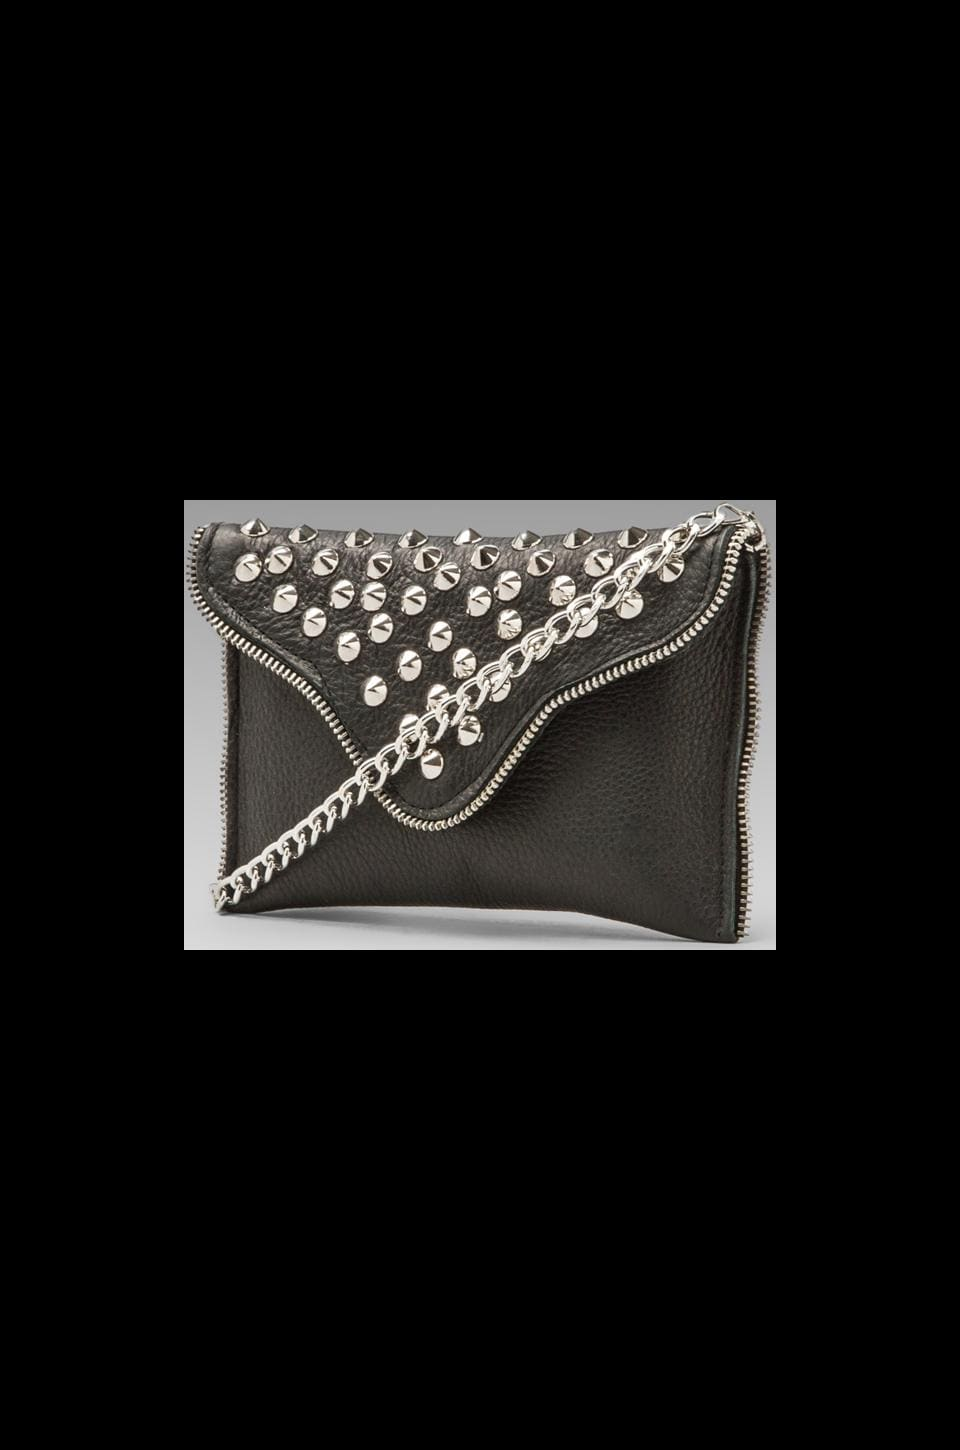 JJ Winters Silver Studs Handbag in Black